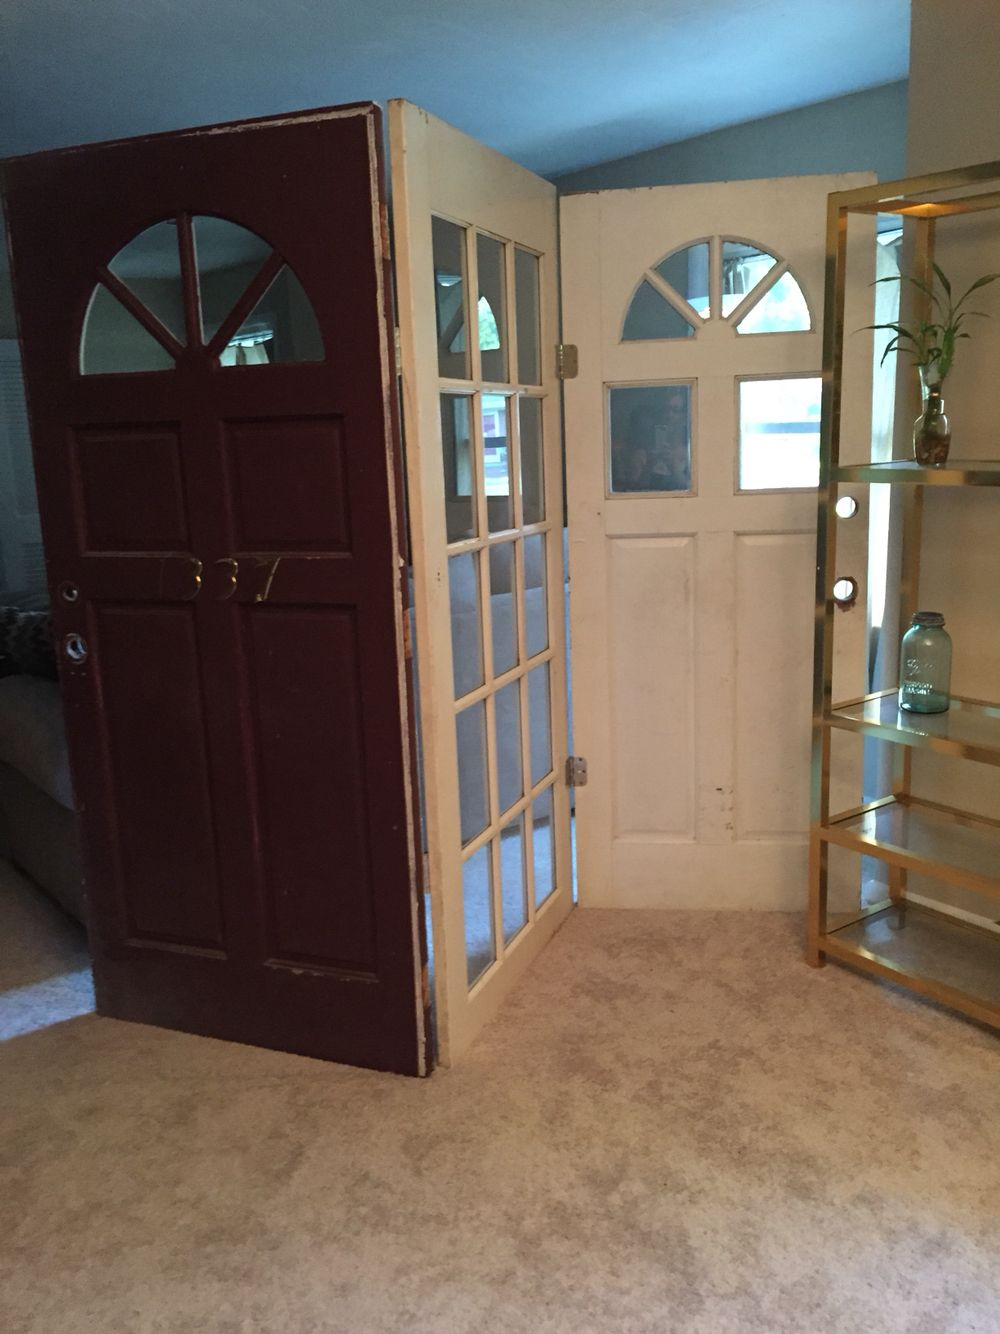 Room divider from old doors. Only cost the price of hinges (around $11.00)!